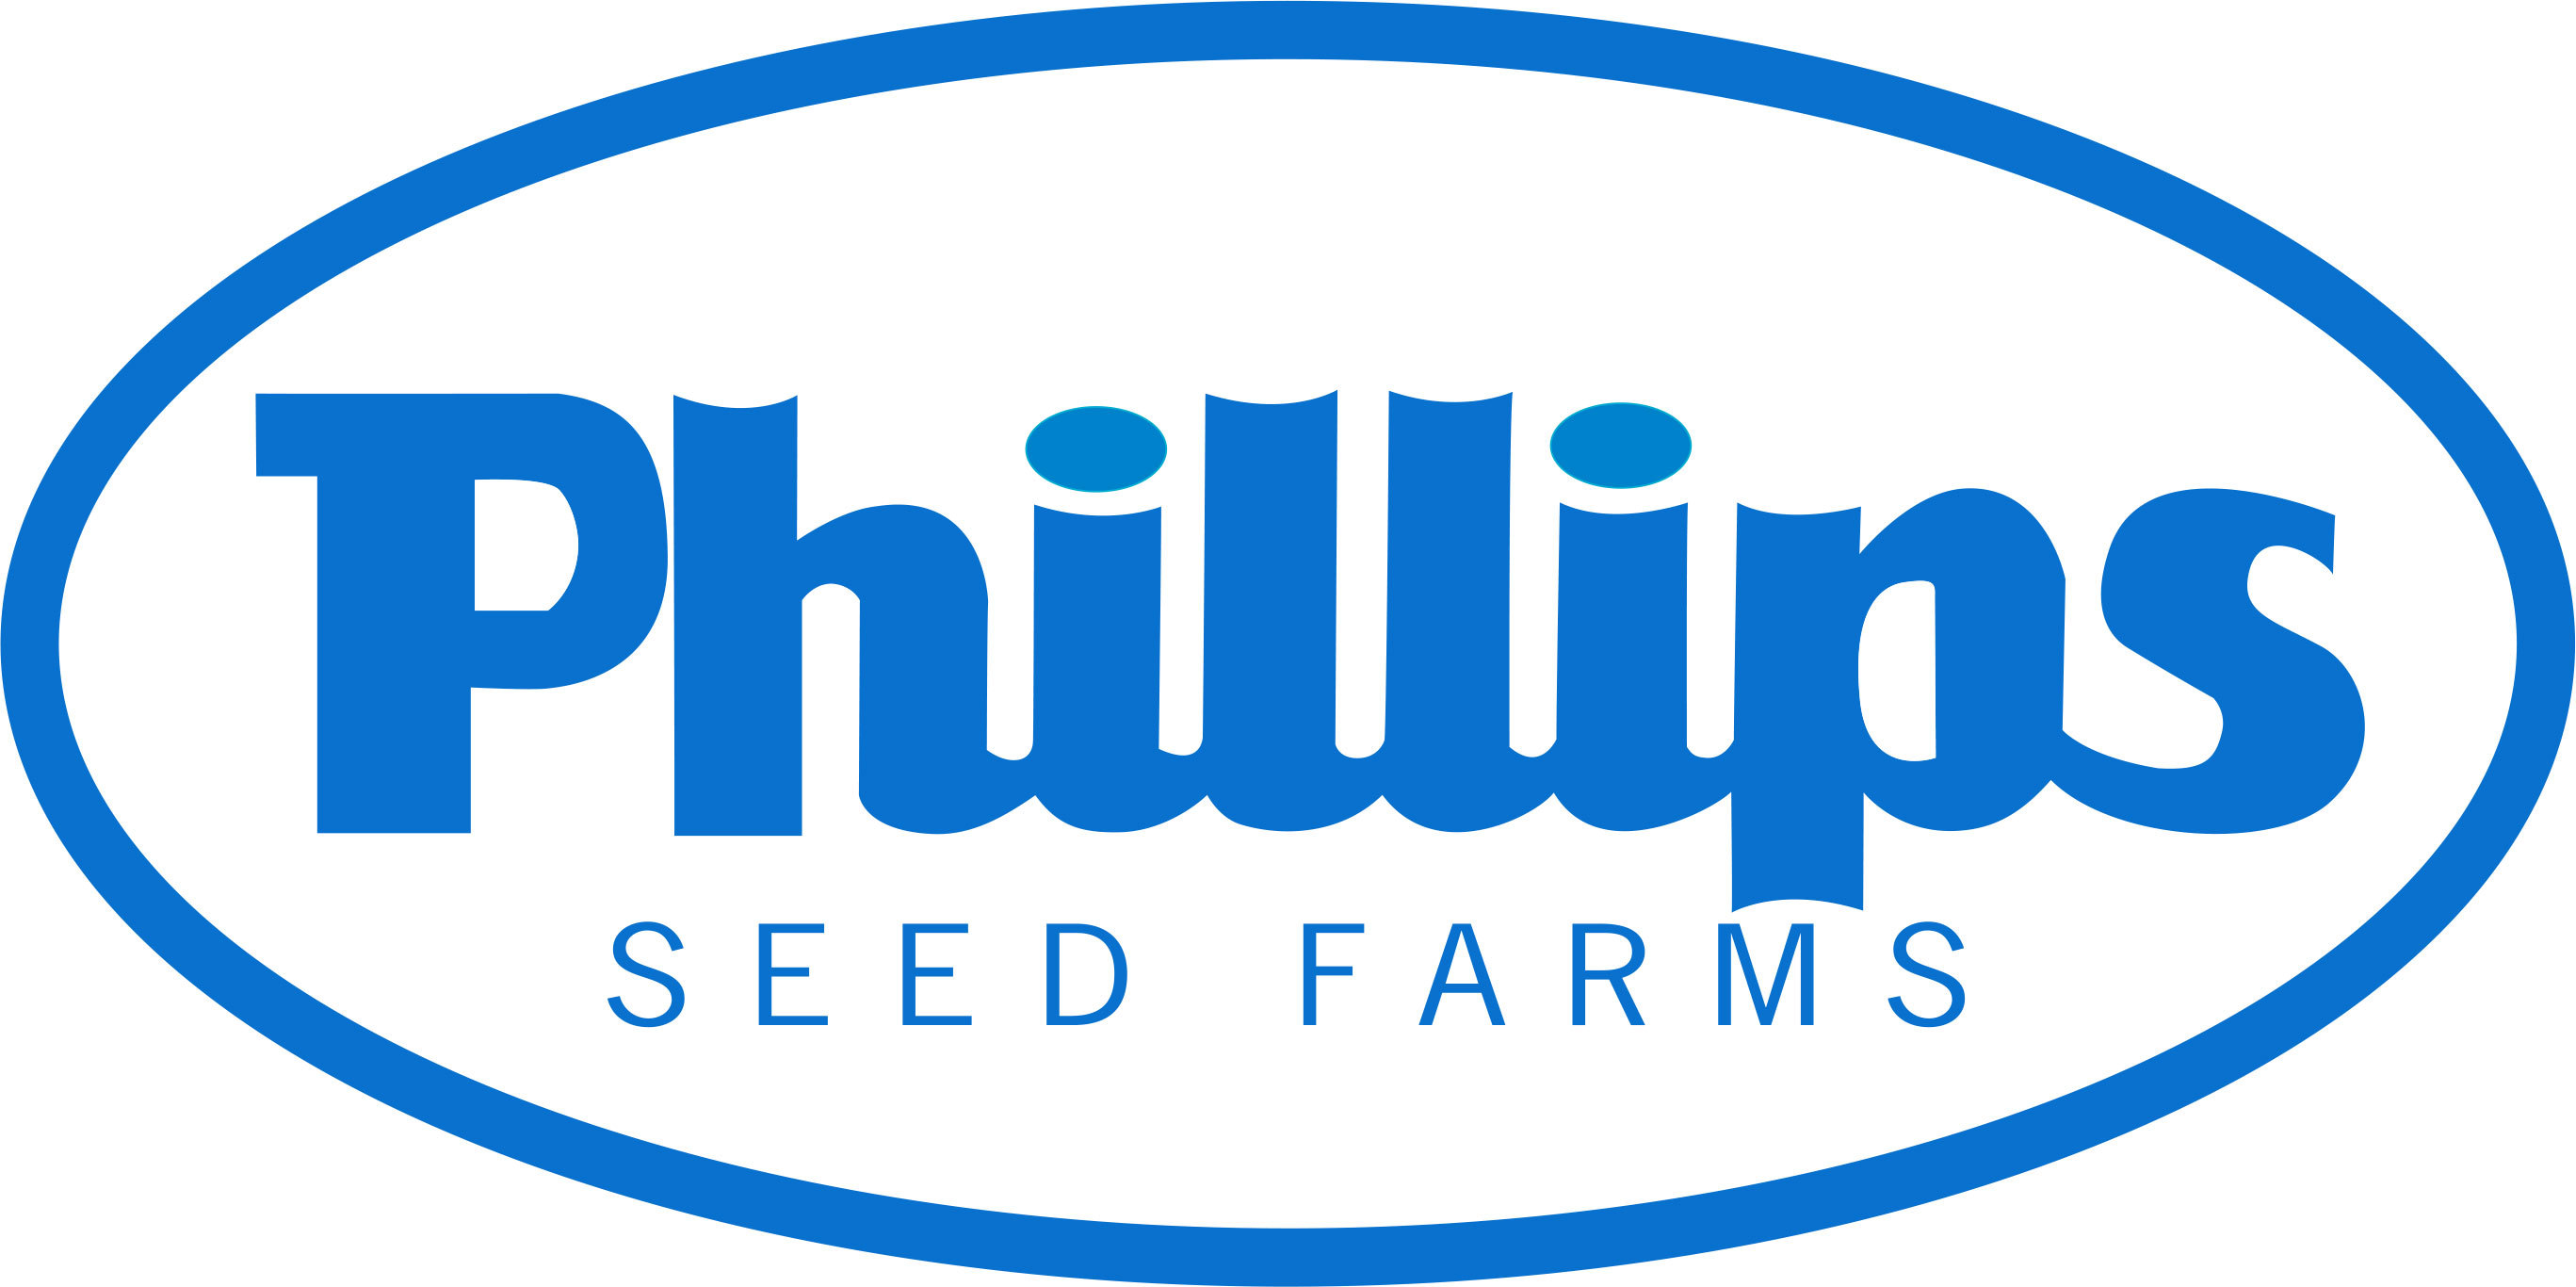 Farmers Edge and Phillips Seed Farms Inc  to Take Digital